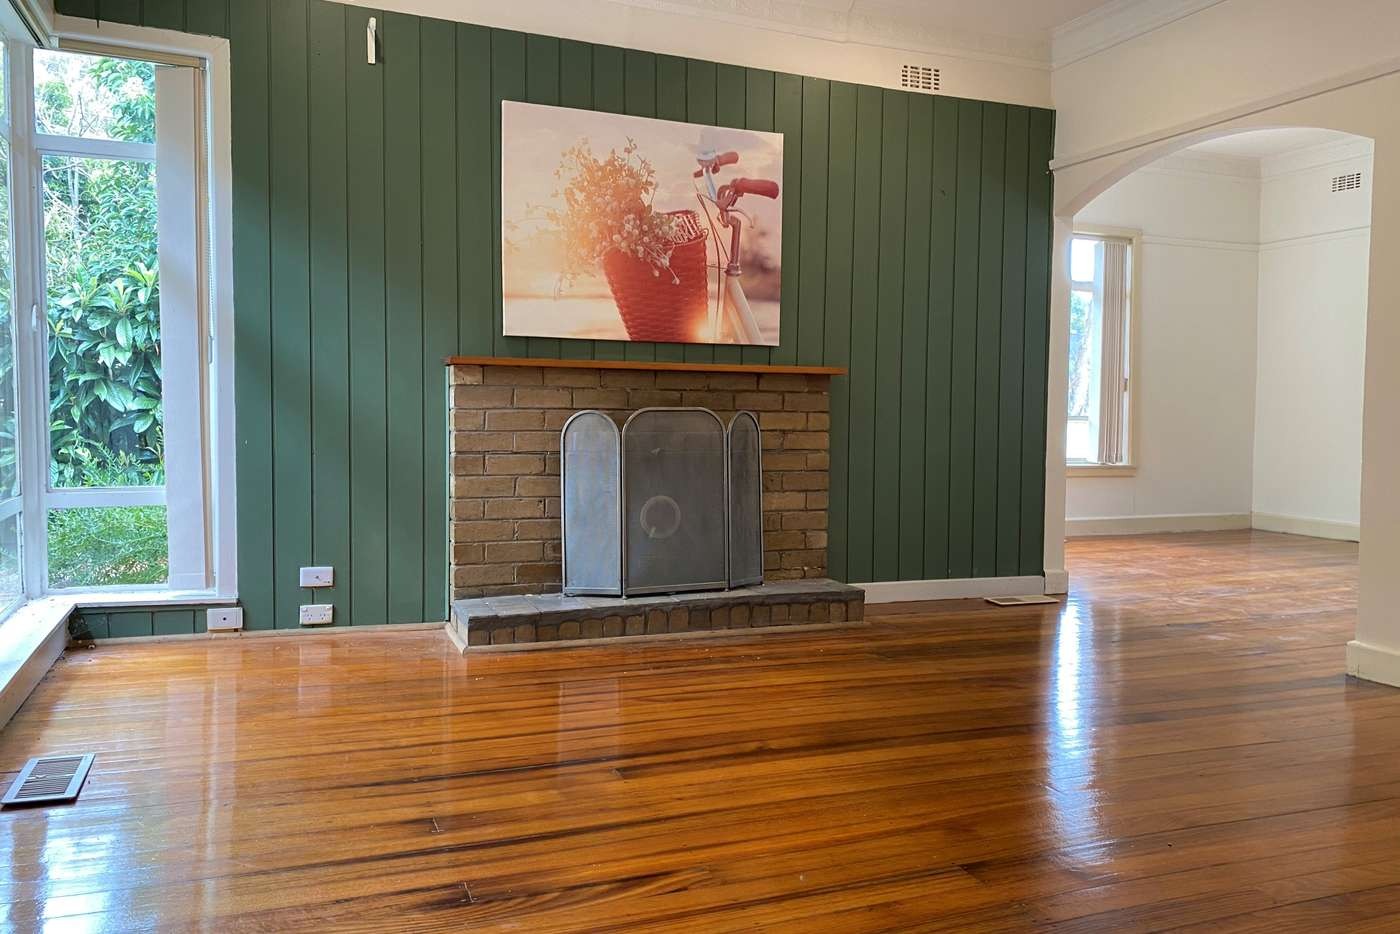 Main view of Homely house listing, 10 Heatherbrae Avenue, Ringwood VIC 3134